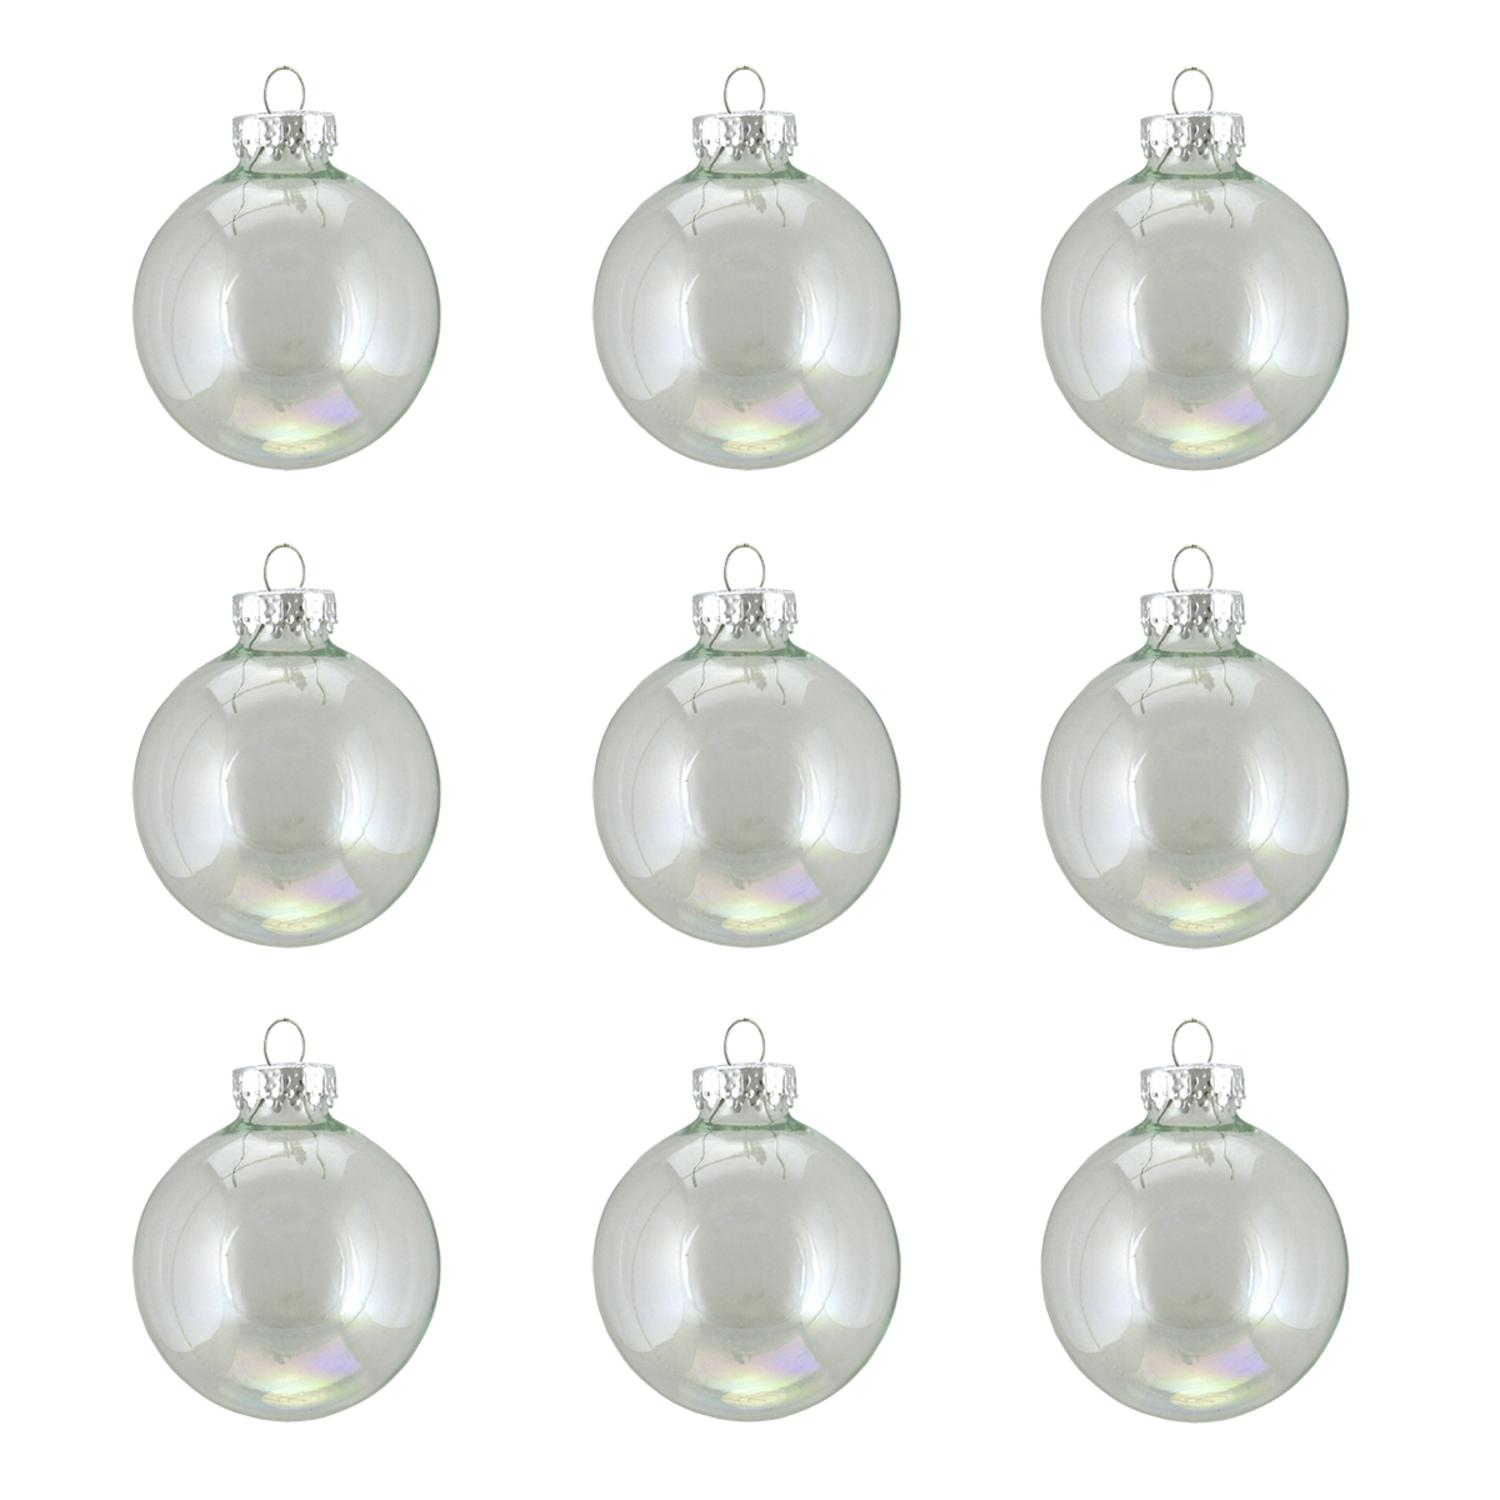 "9ct Clear Iridescent Glass Ball Christmas Ornaments 2"" (50mm)"